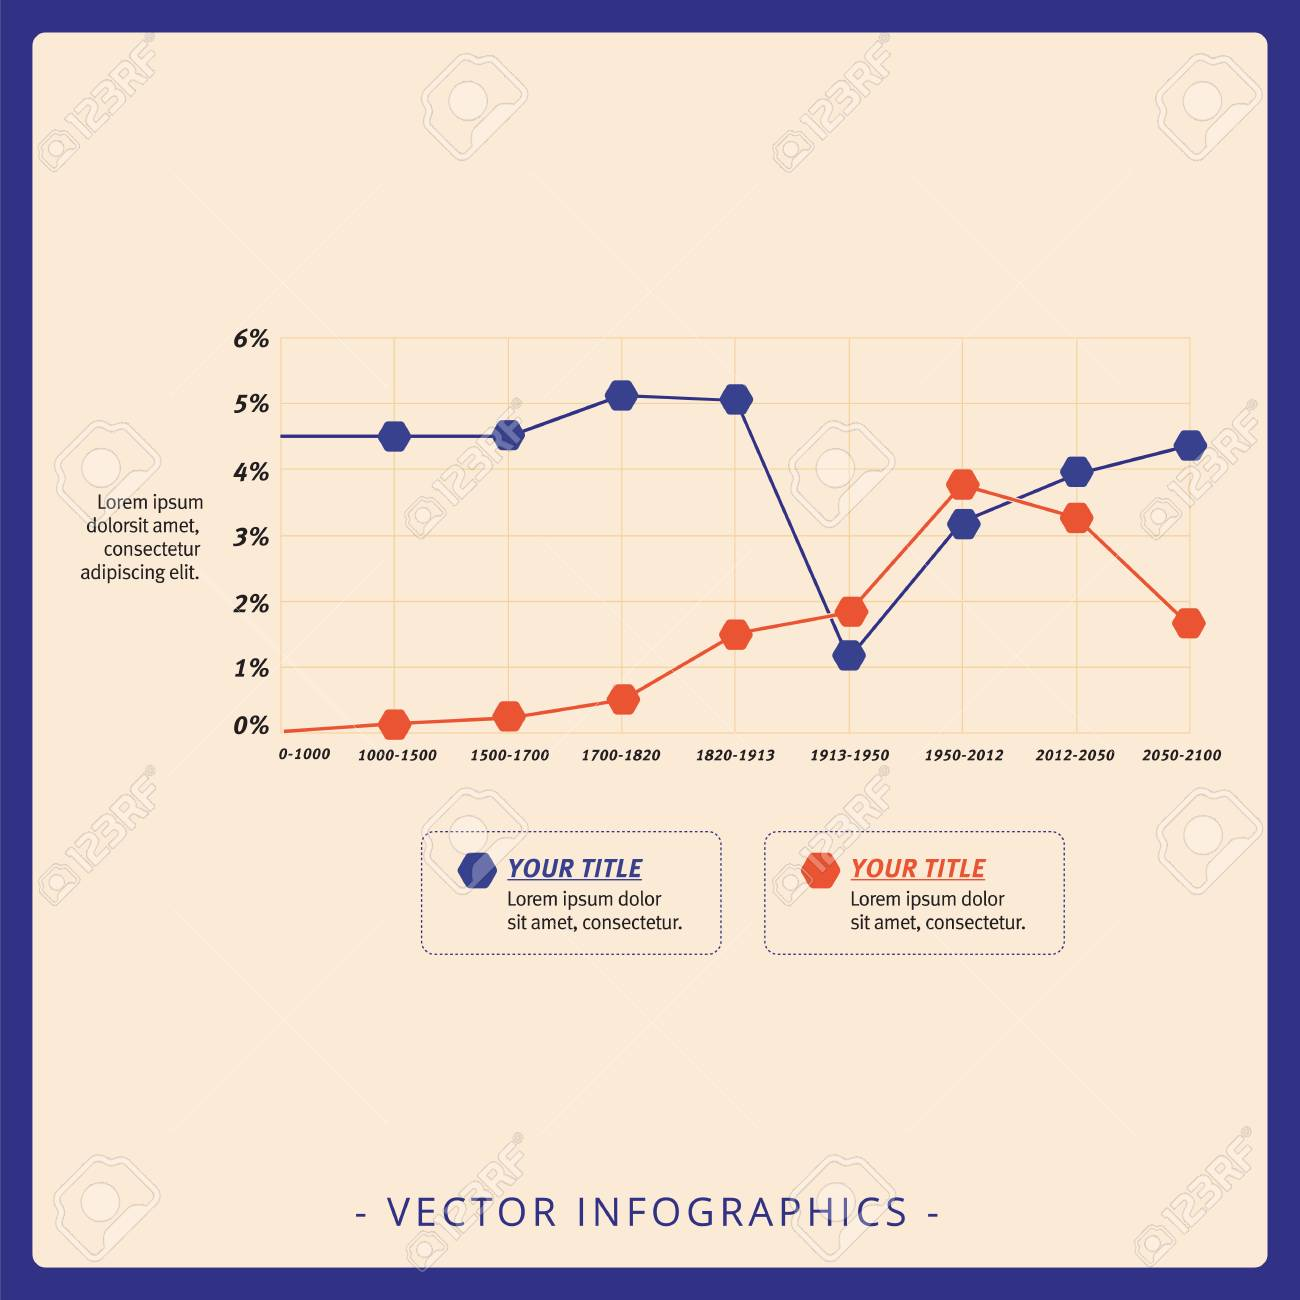 Multicolored editable template of line graph with timeline and